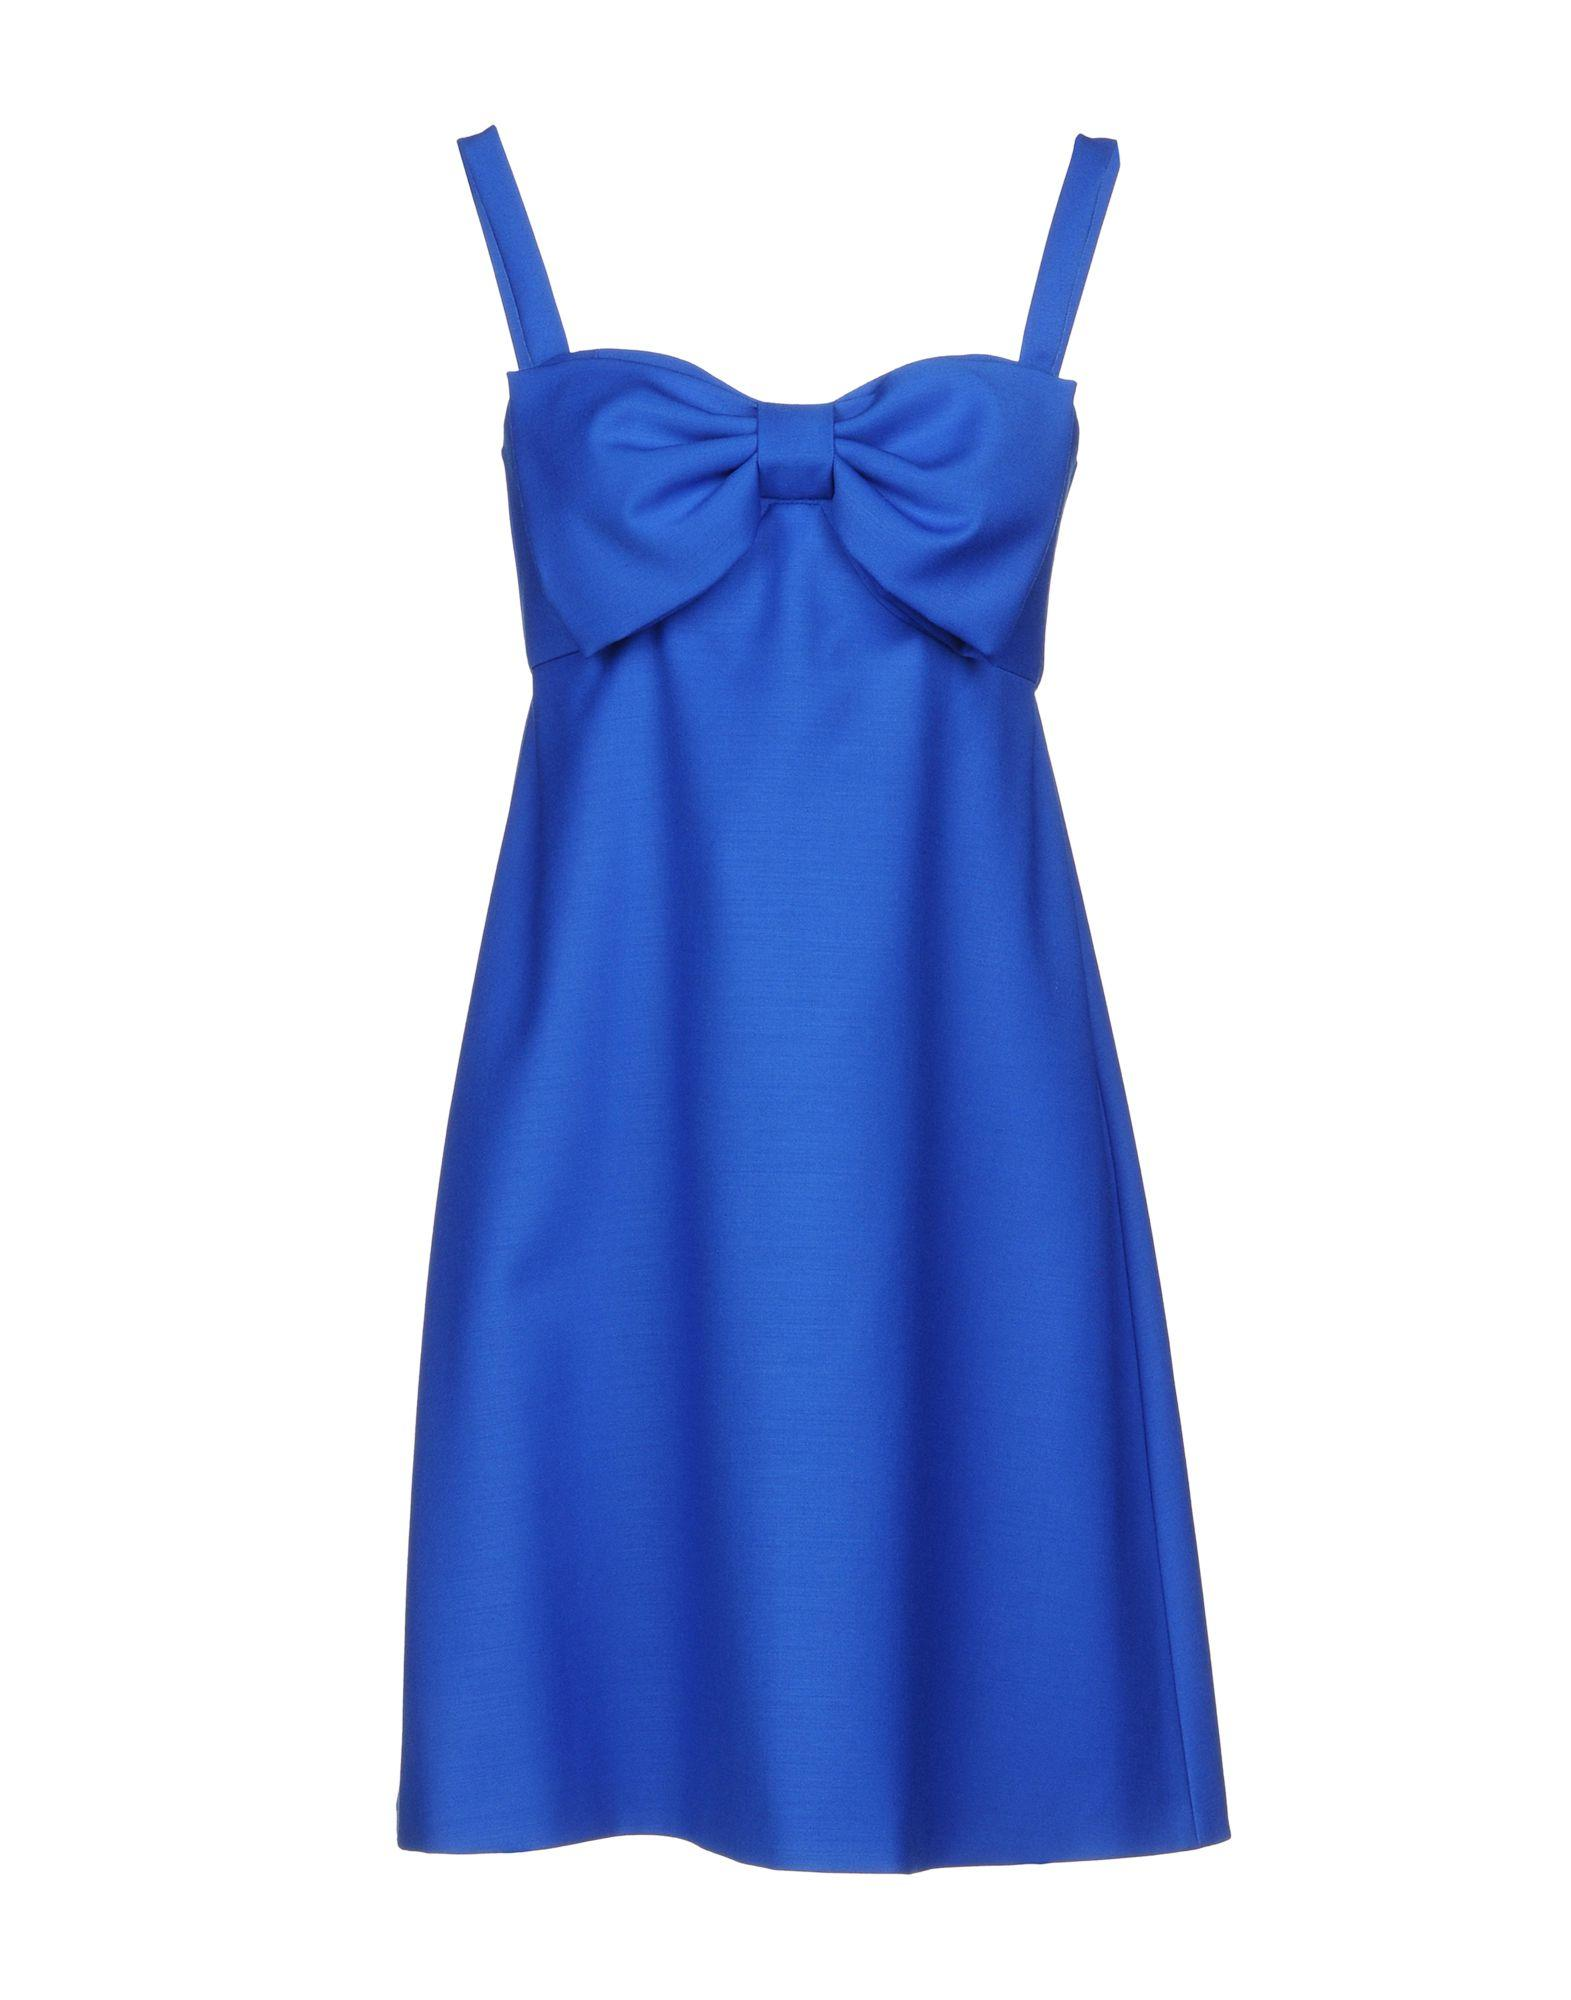 Boutique Moschino Short Dress In Blue